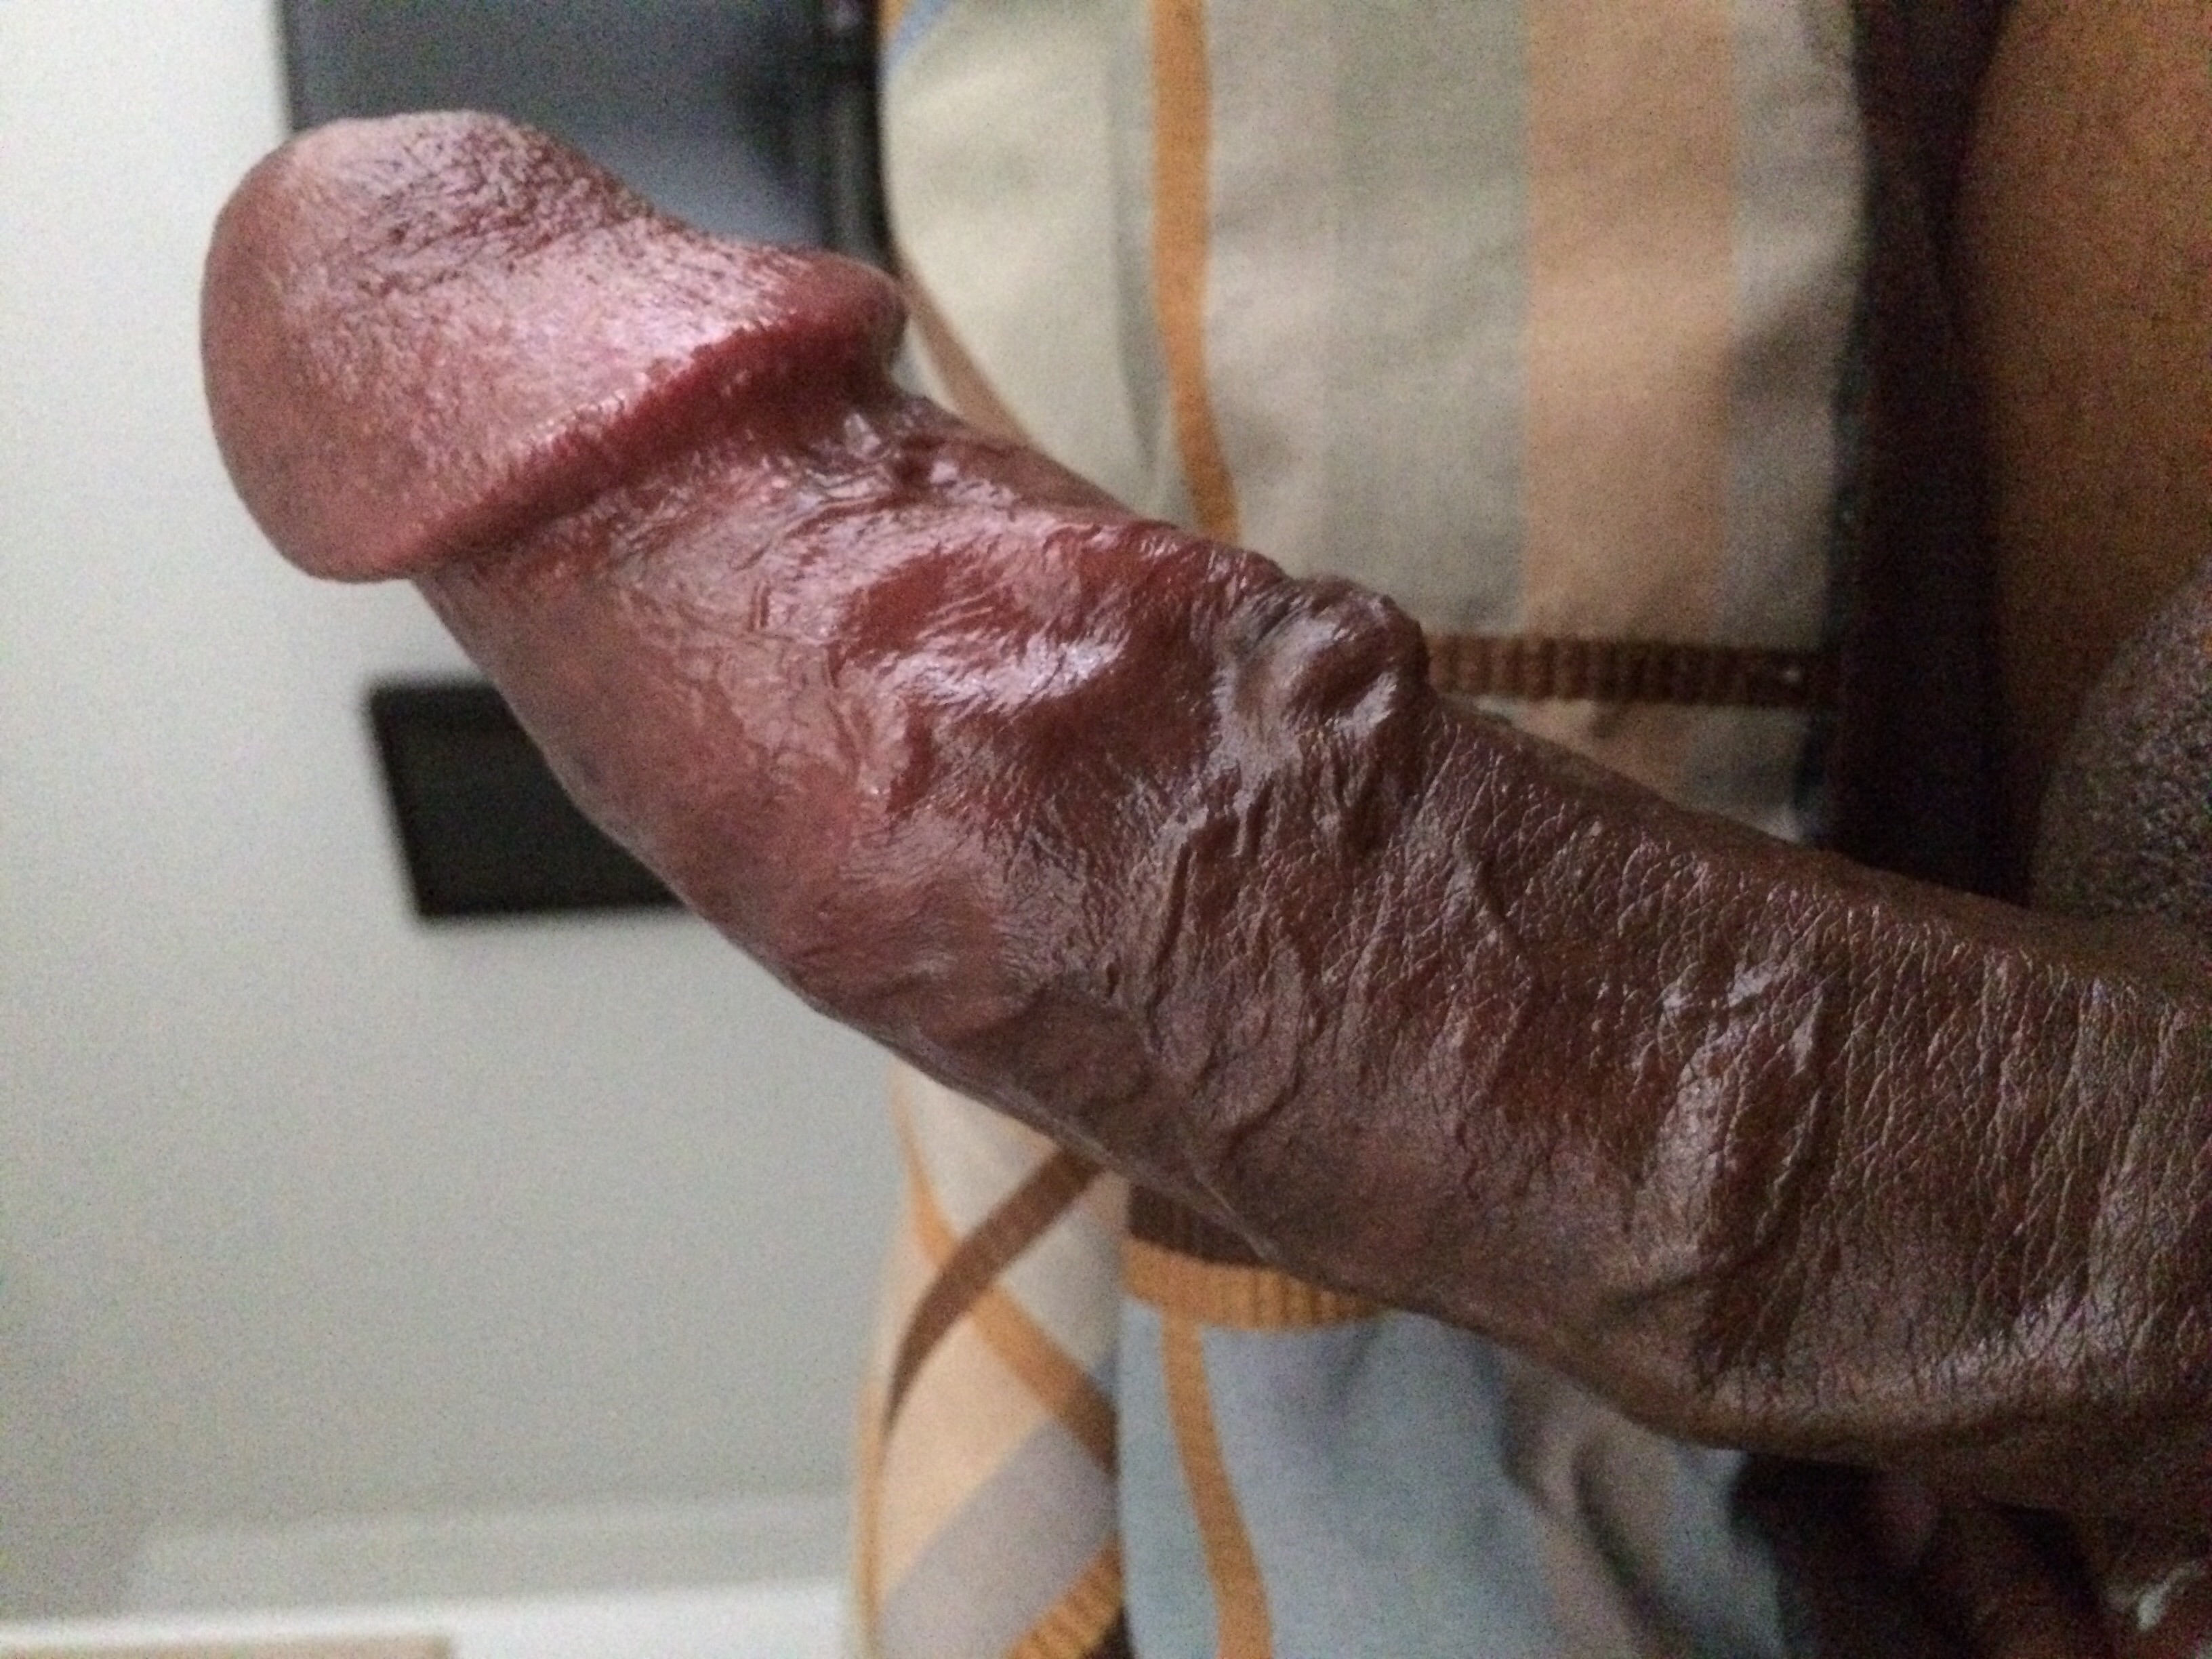 huge-black-dick-thumbs